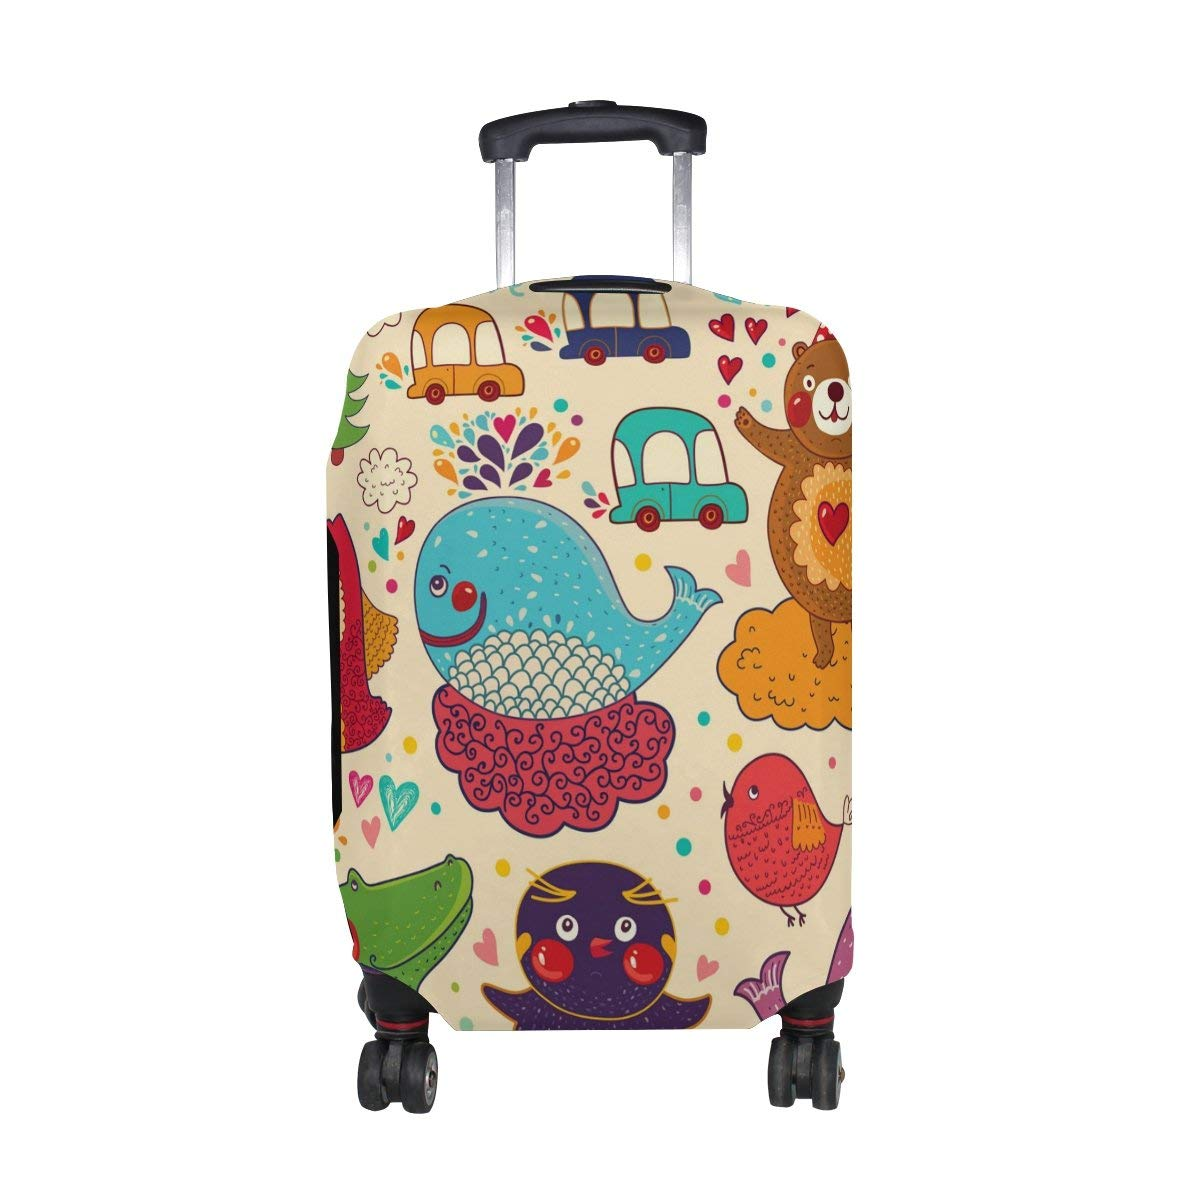 604248dea ALAZA Unicorn Whale Polyester Luggage Travel Suitcase Cover Case Protector